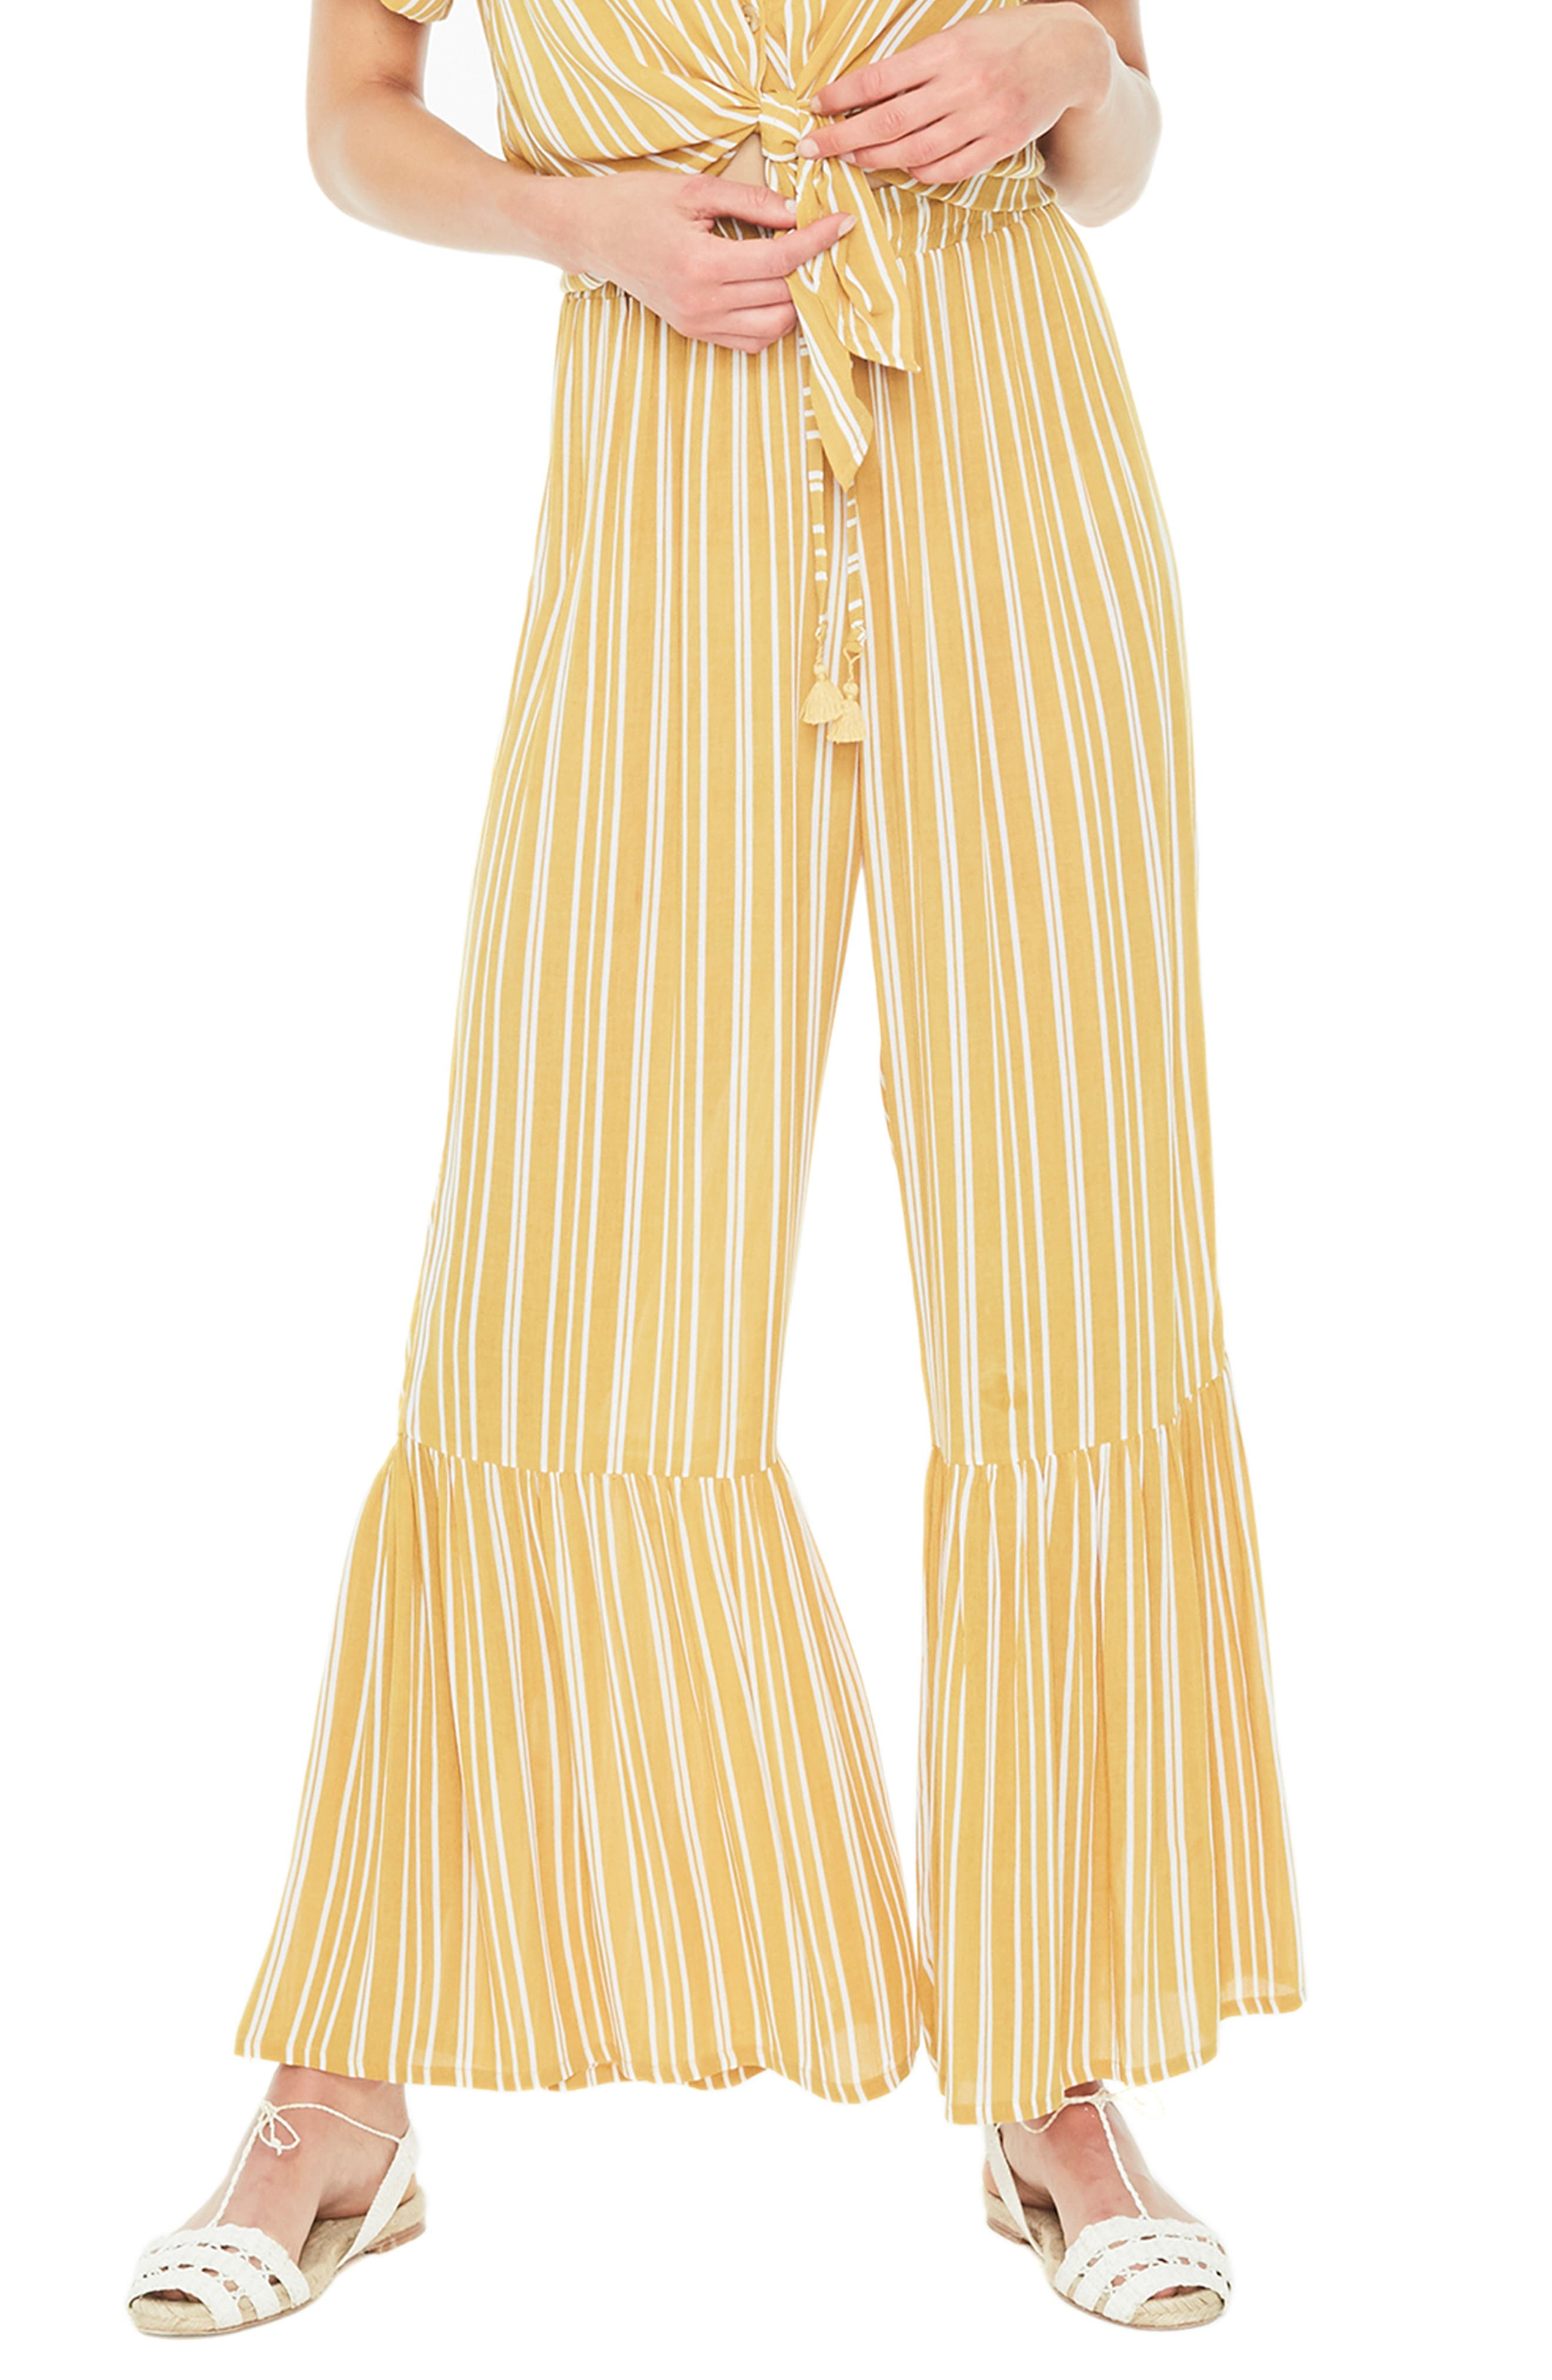 Faithfull The Brand Bisou Stripe Flare Hem Pants, Yellow